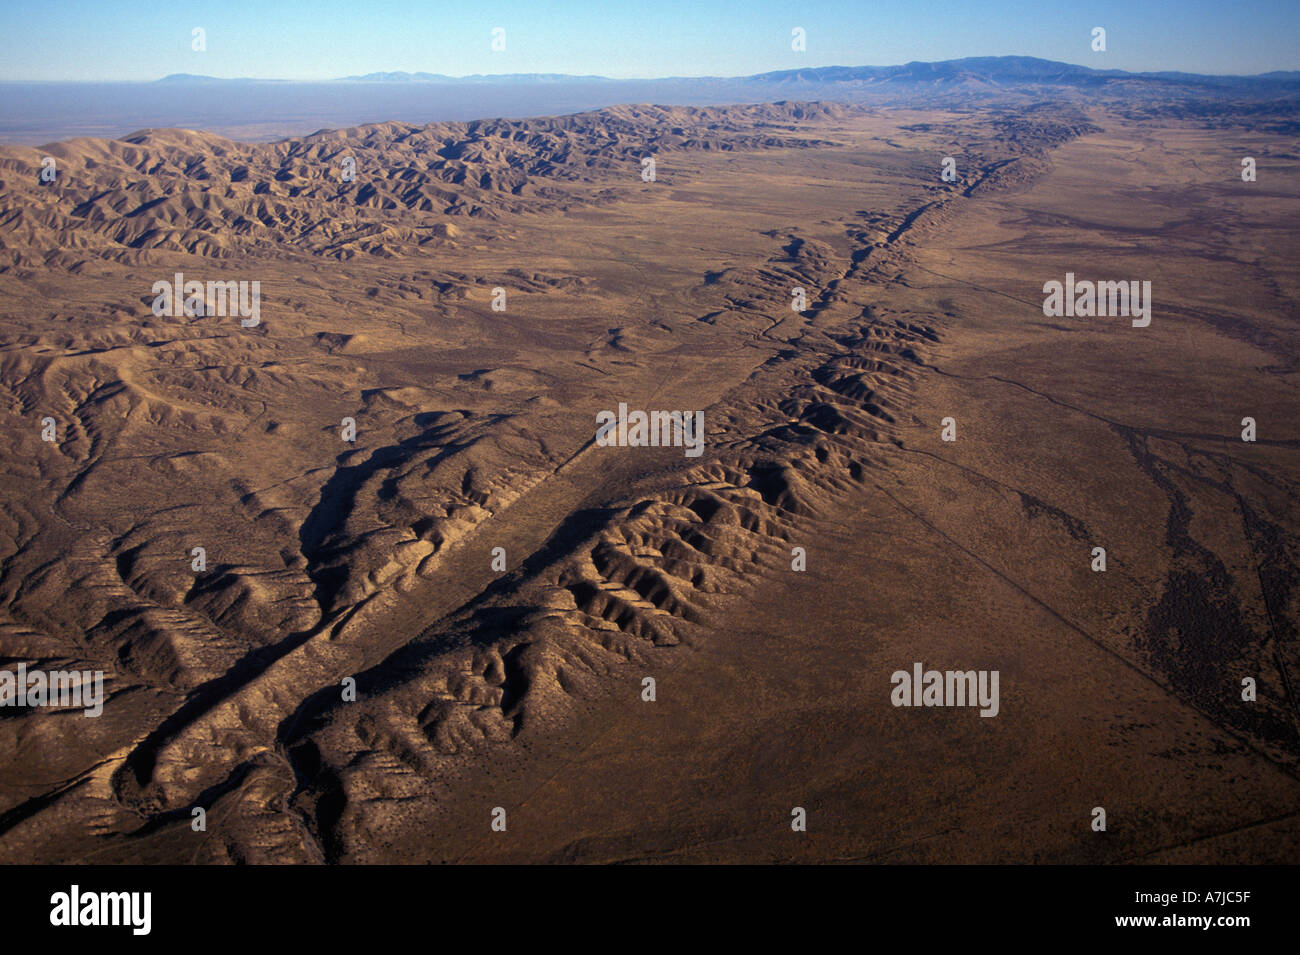 SAN ANDREAS FAULT, Aerial of fault in Carrizo Plain, Central California Stock Photo